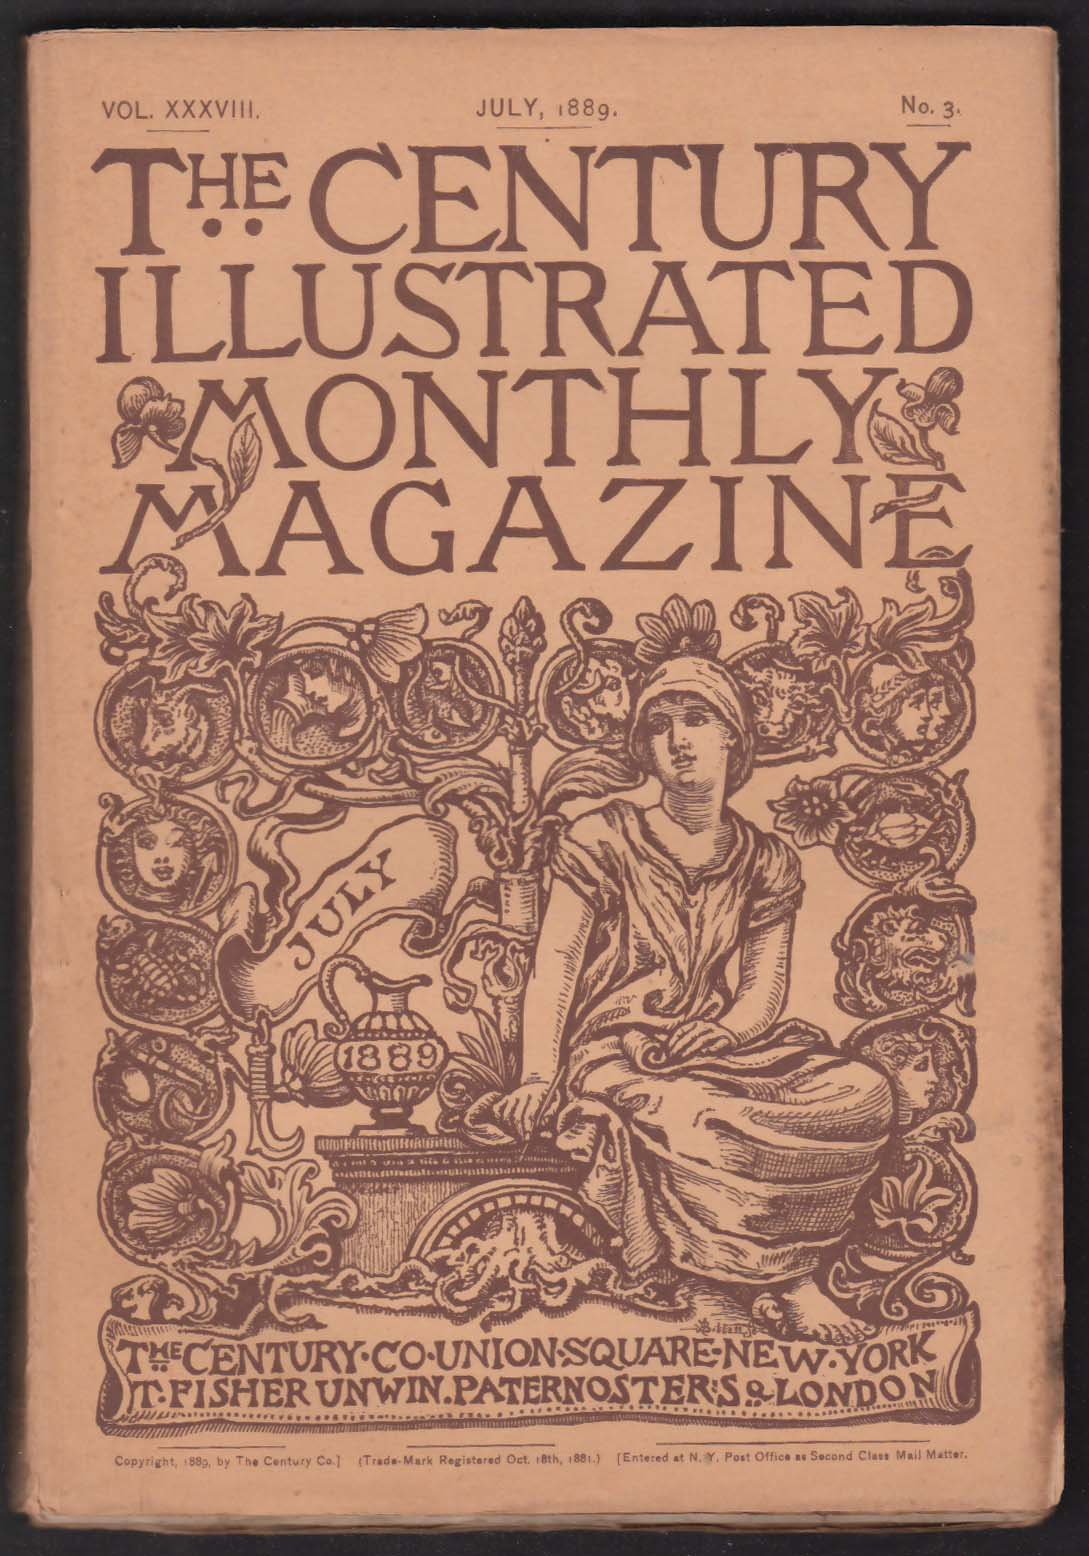 CENTURY ILLUSTRATED MONTHLY Frederic Remington Lincoln Charles de Kay + 7 1889